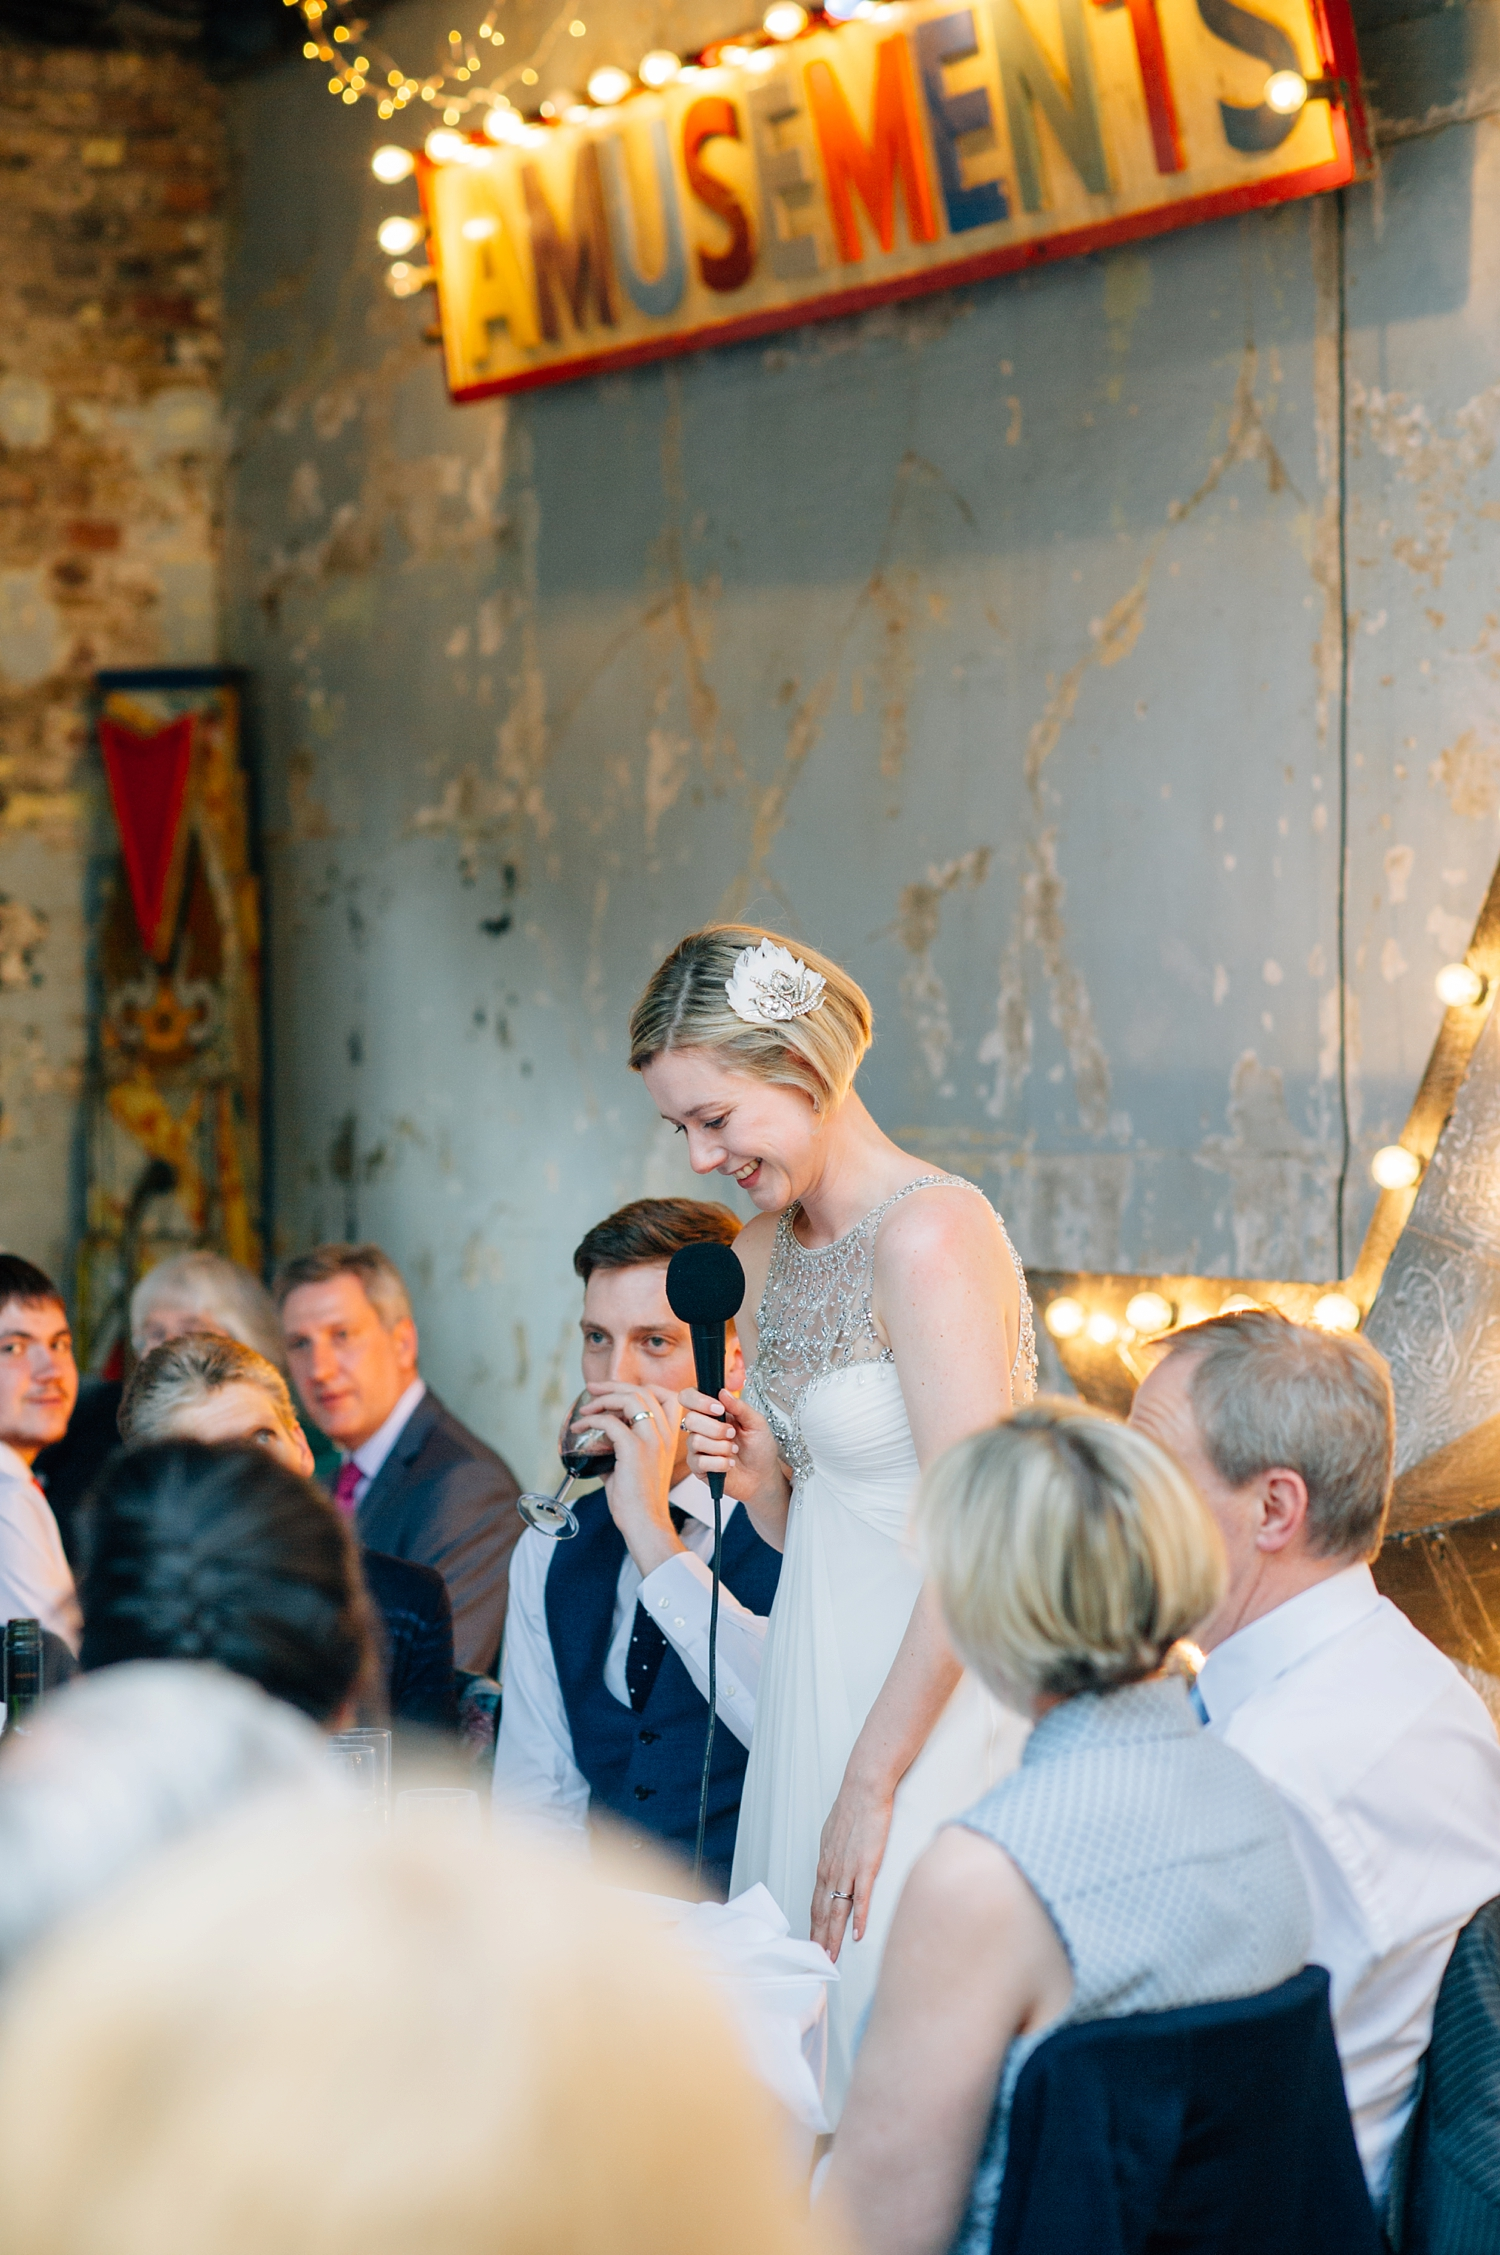 0160-lisa-devine-alternative-wedding-photography-london-hackney-dalston-london-photography-townhall-hotel.JPG